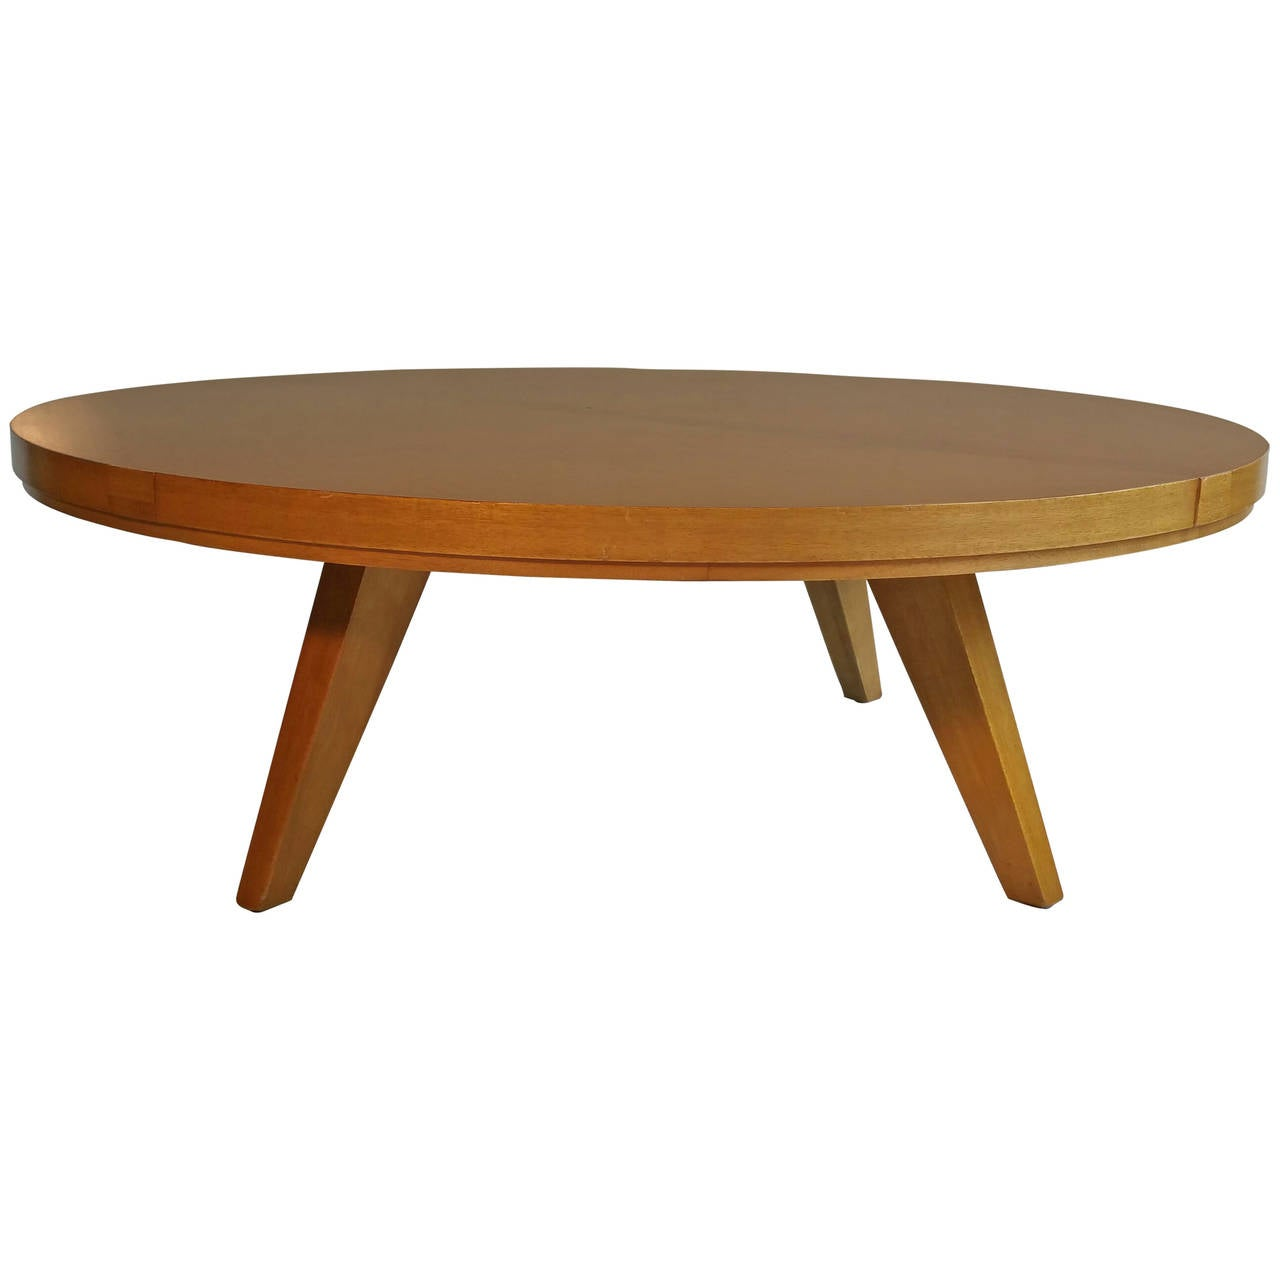 Classic mid century modern coffee table red lion architecturally designed for sale at 1stdibs Mid century coffee tables